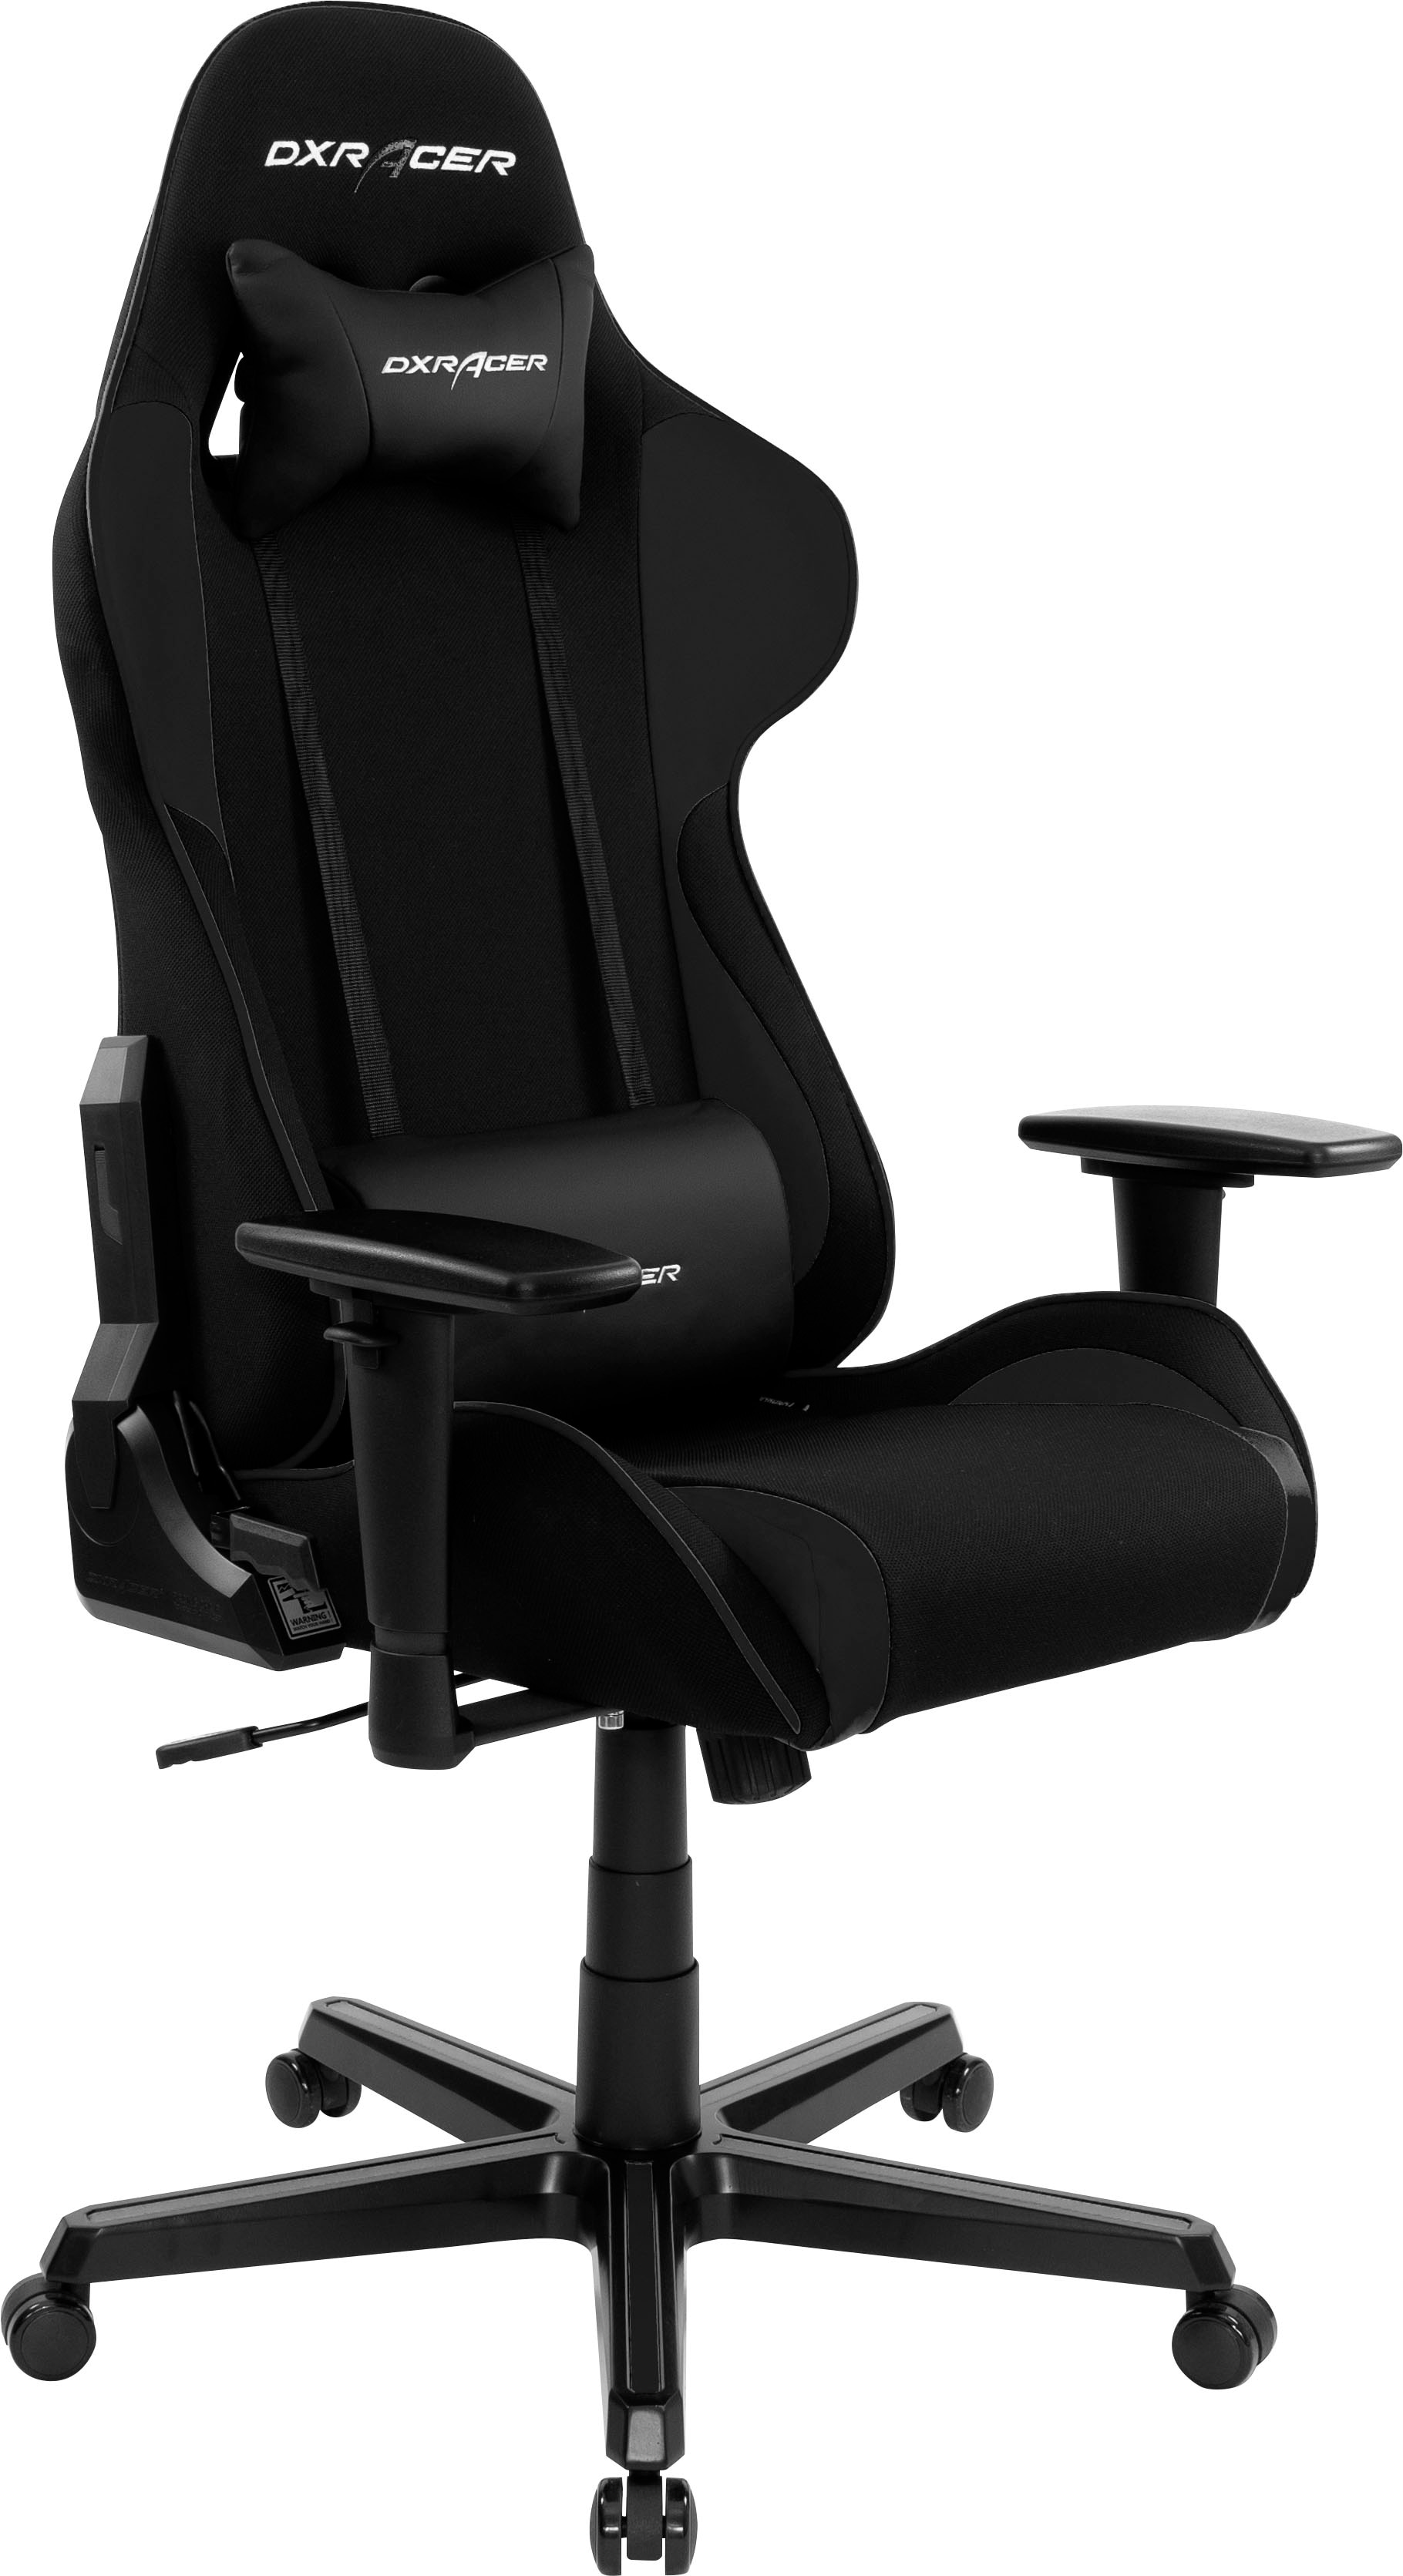 "DXRacer Gaming Chair ""DXRacer Gaming Stuhl OH/FH11 F-Serie"" Technik & Freizeit/Technik/Gaming-Shop/Gaming-Zubehör"